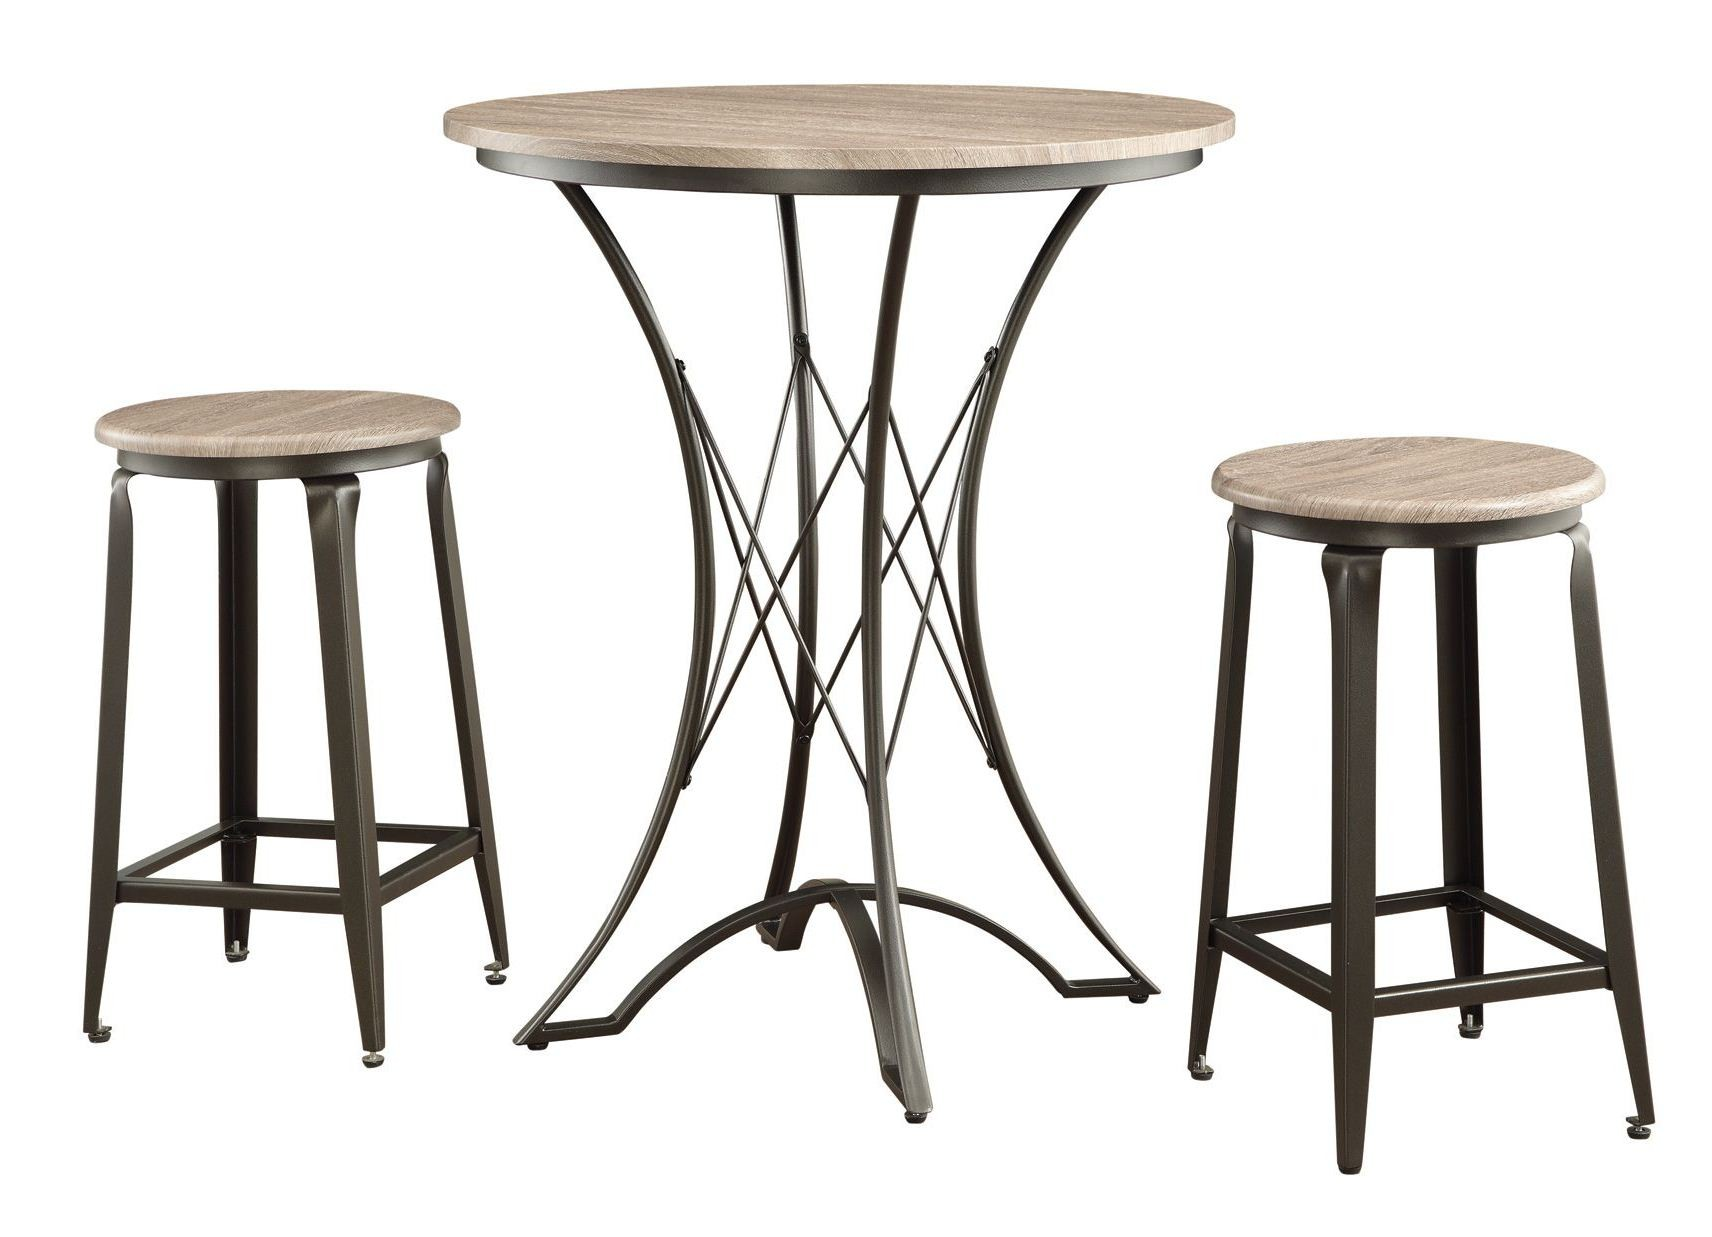 100006 3 Pieces Round Counter Height Bar Set From Coaster 100006 Coleman Furniture